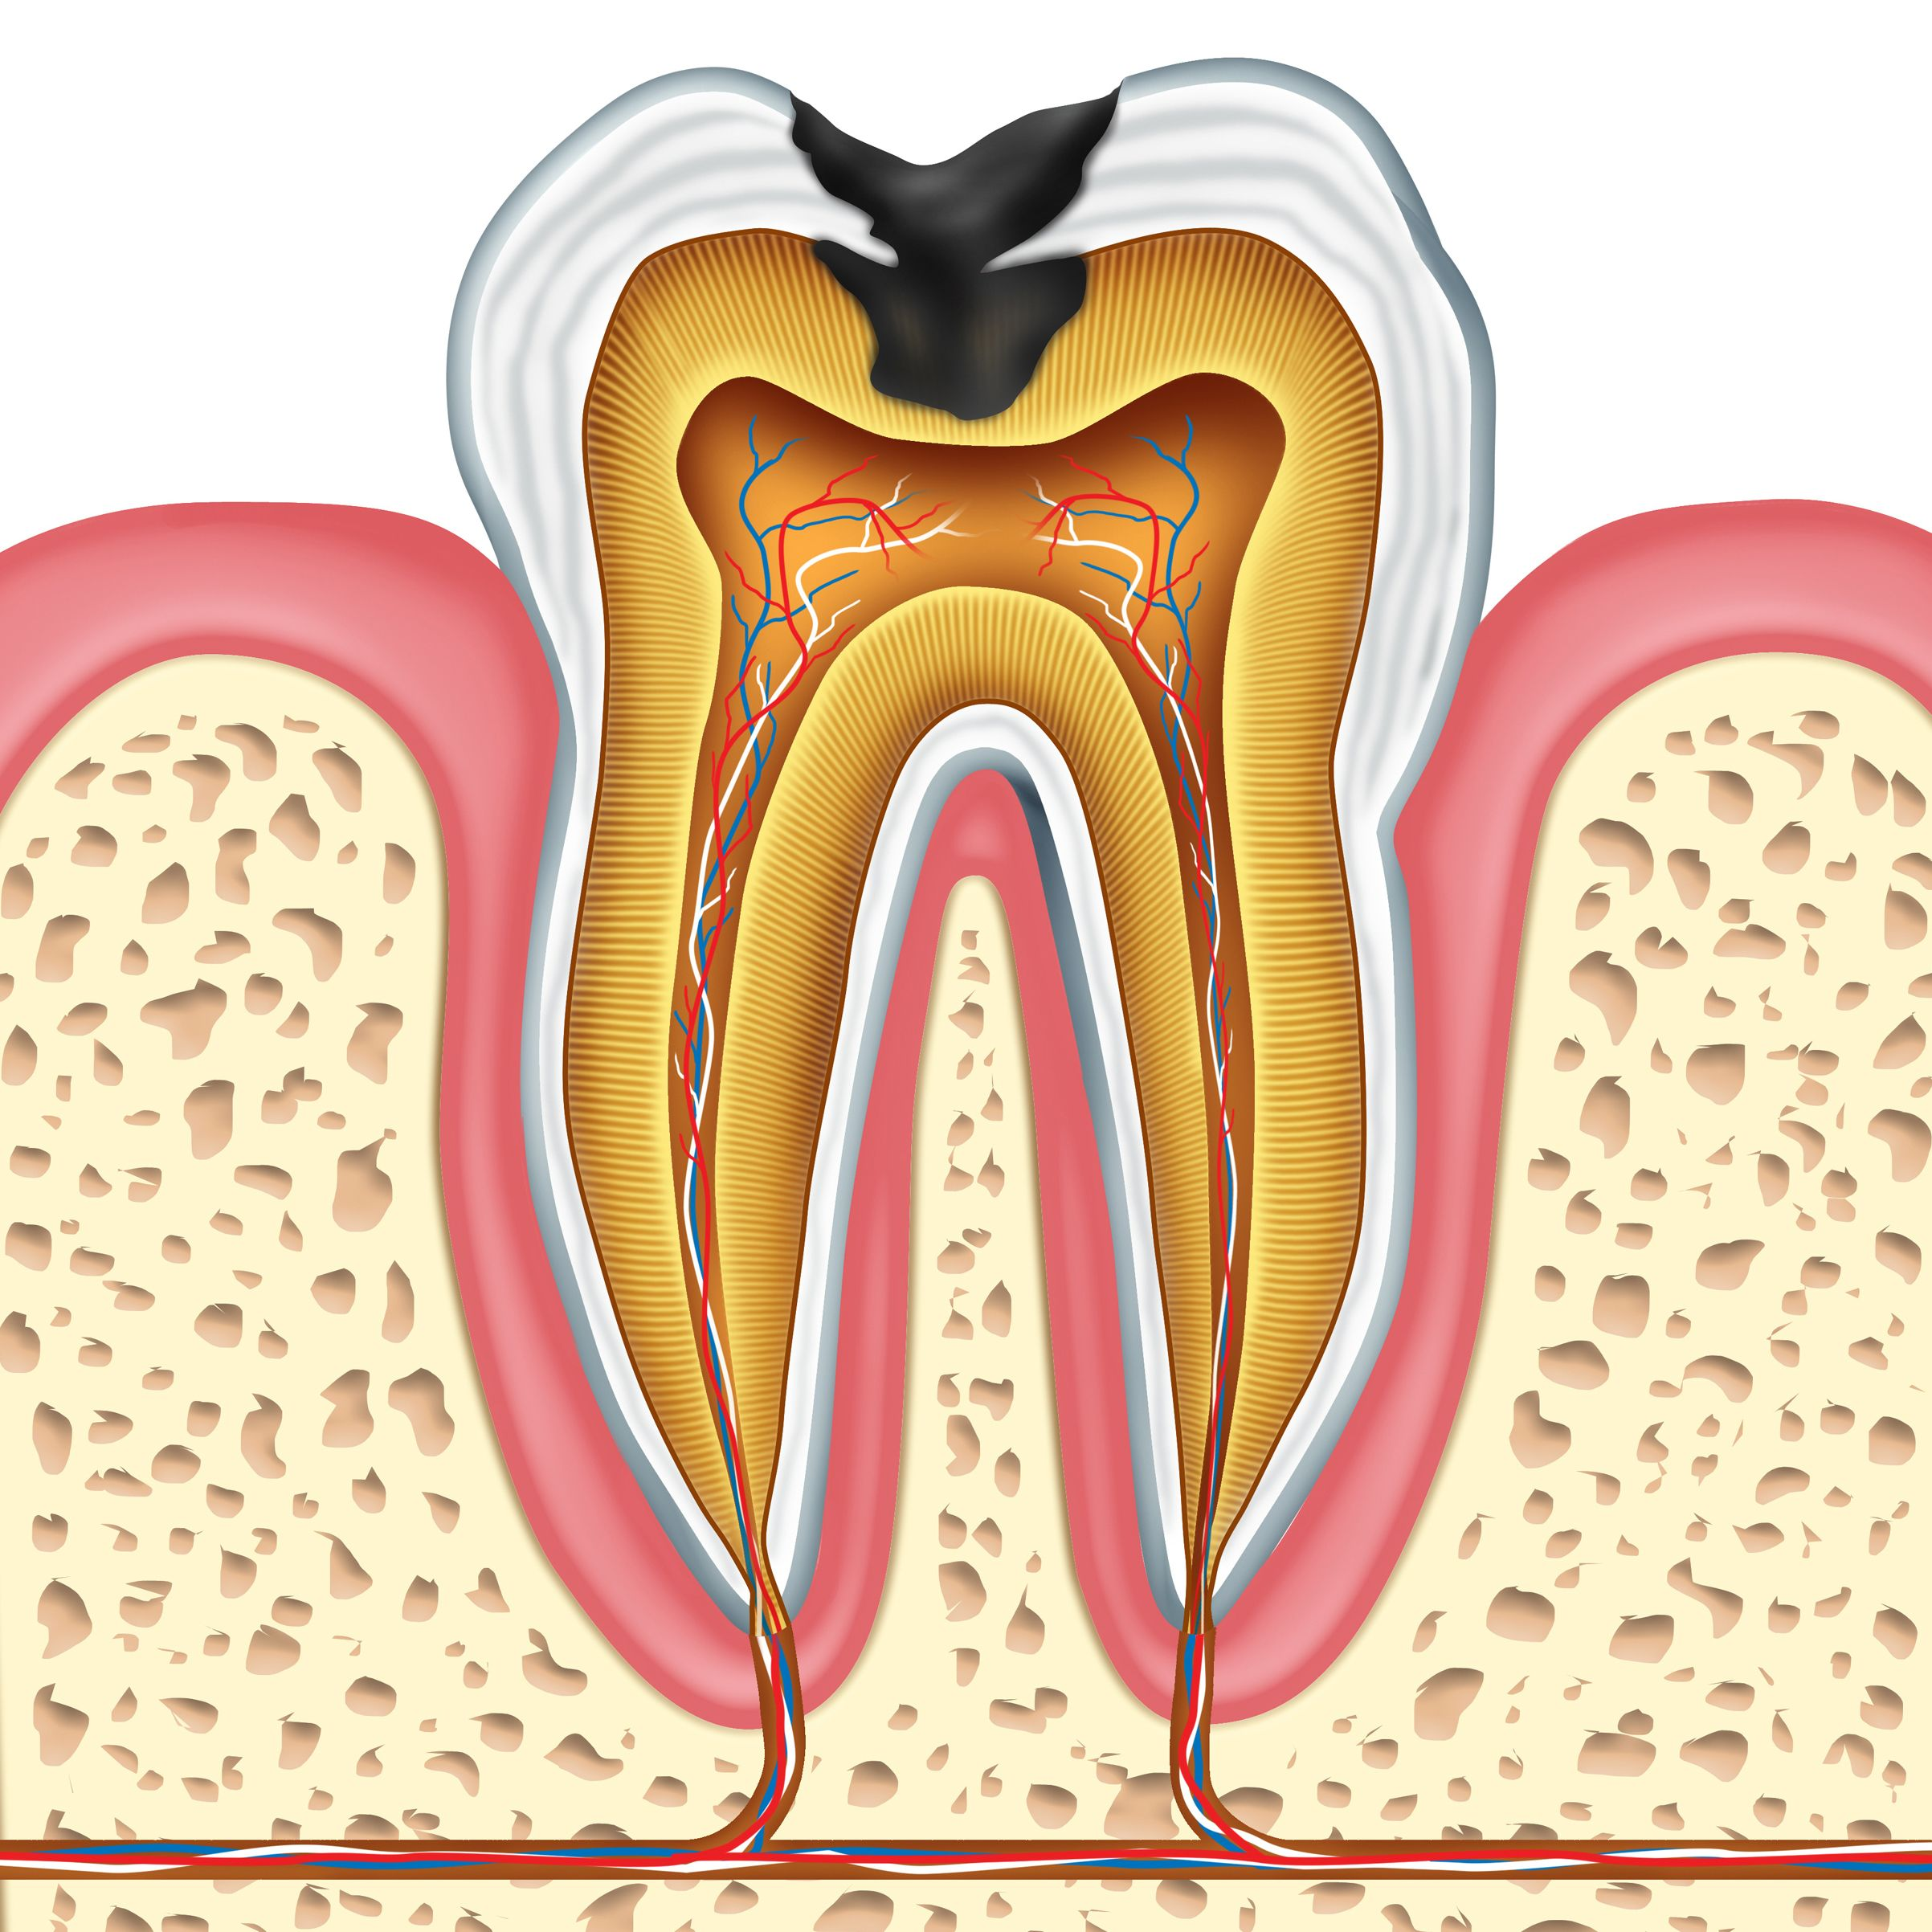 A serious cavity affecting a tooth